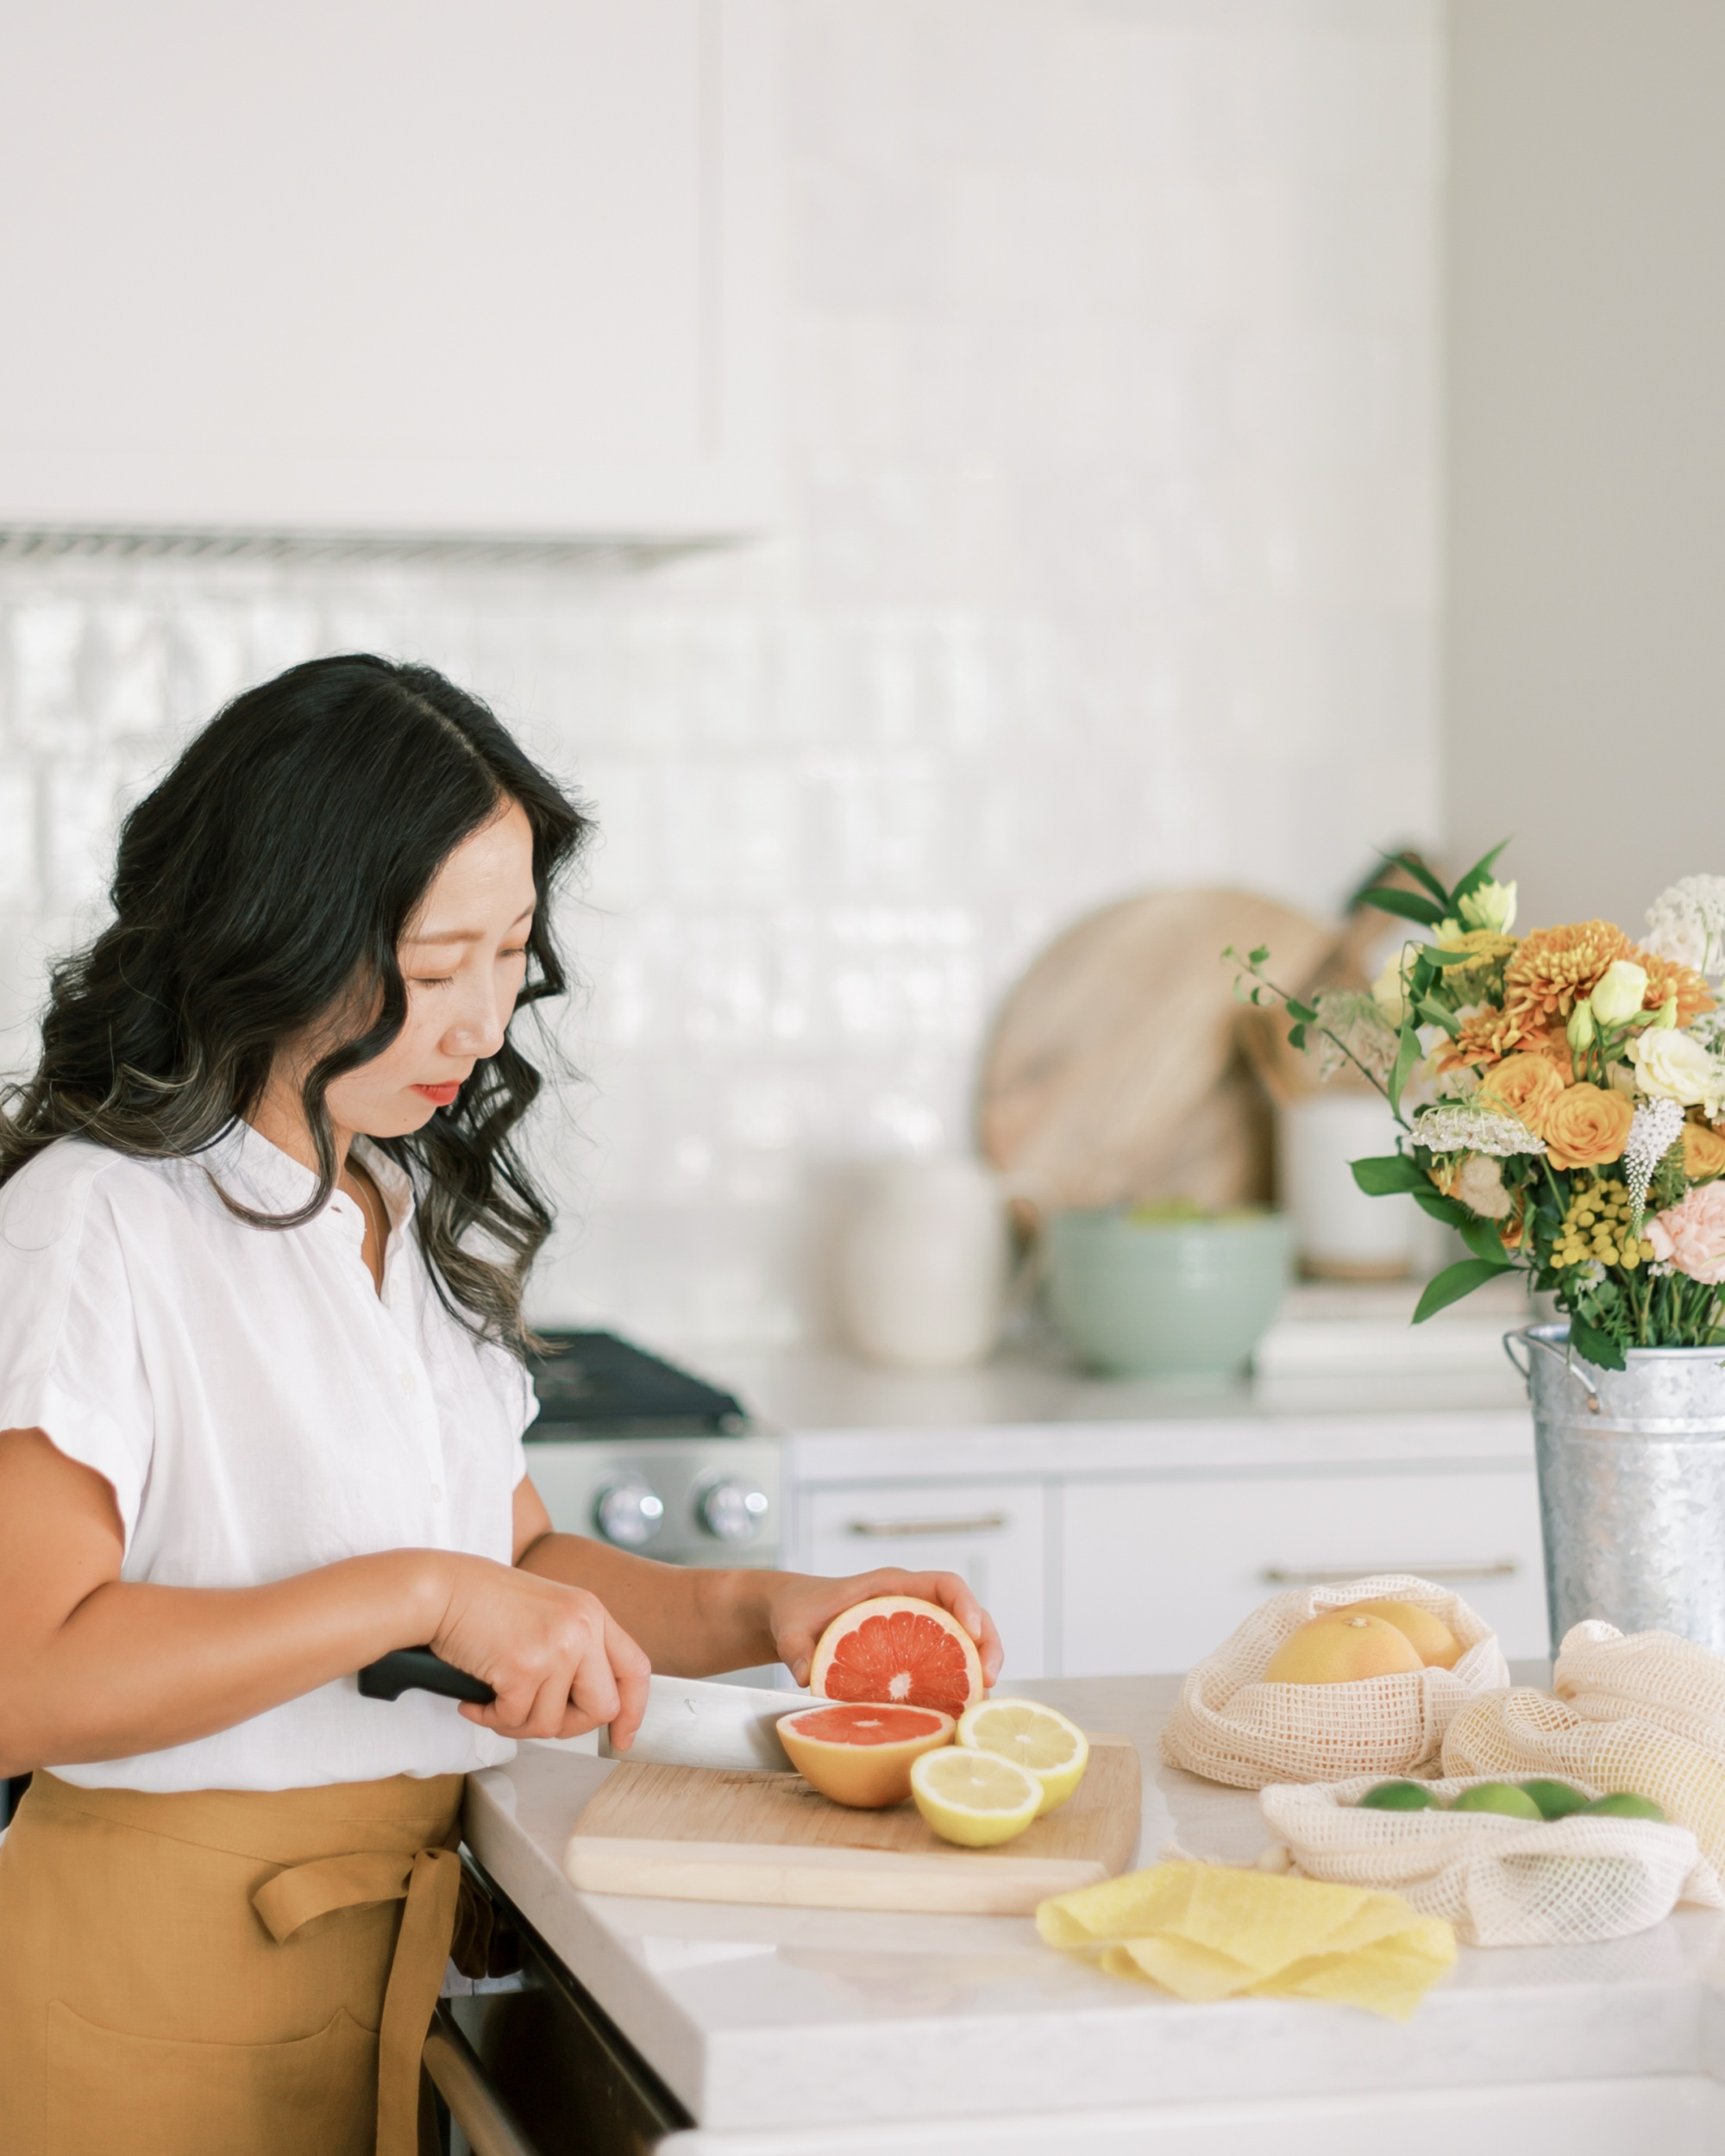 self-care and self-love, asian woman cutting a grapefruit in a white blouse and tan skirt in modern white kitchen